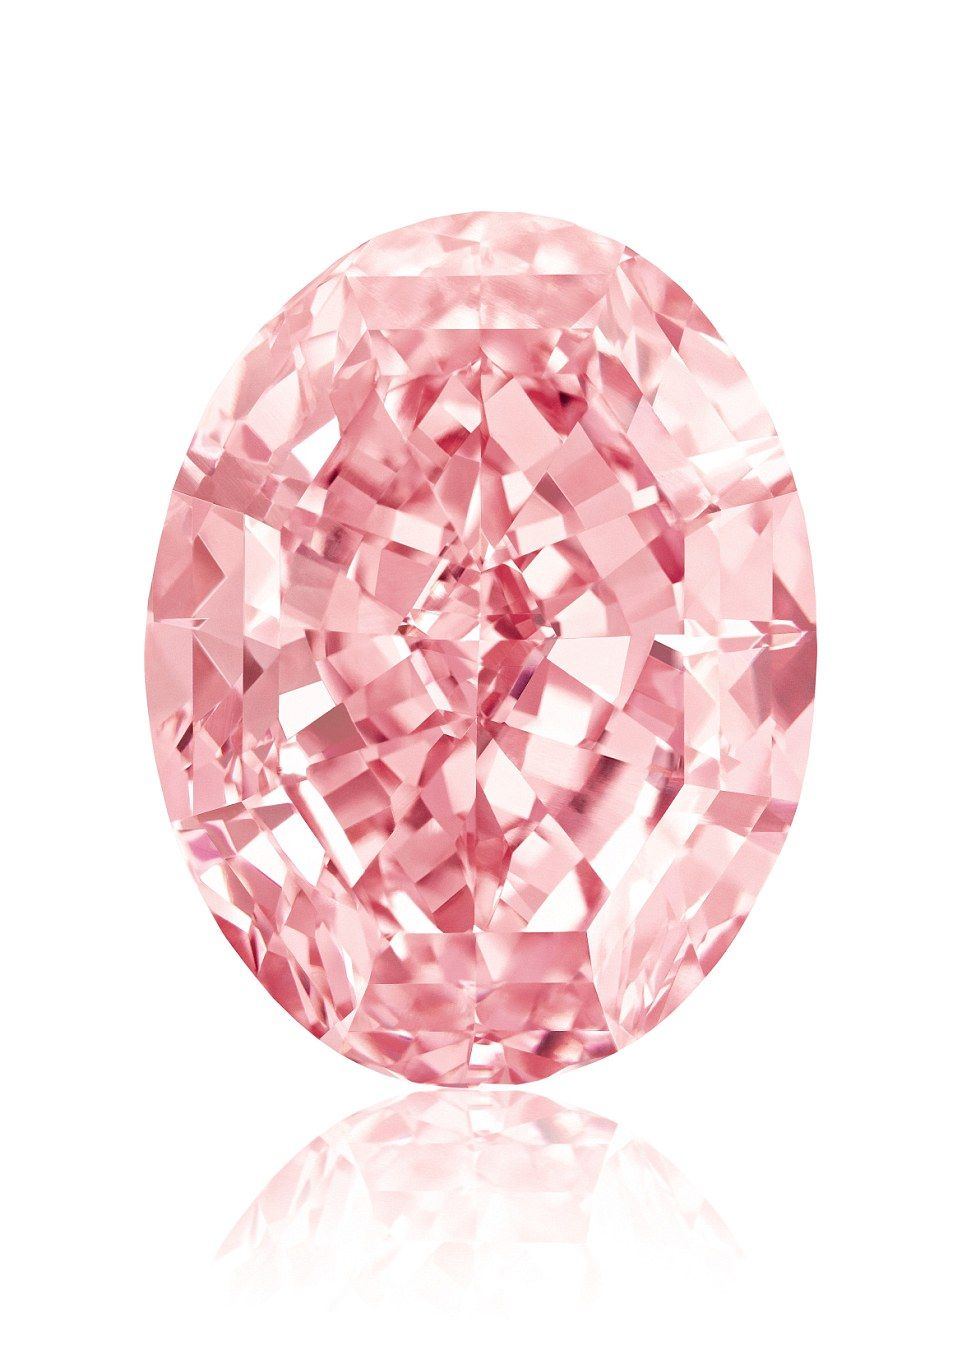 The world\'s most expensive cut diamond set to go on sale | De beers ...